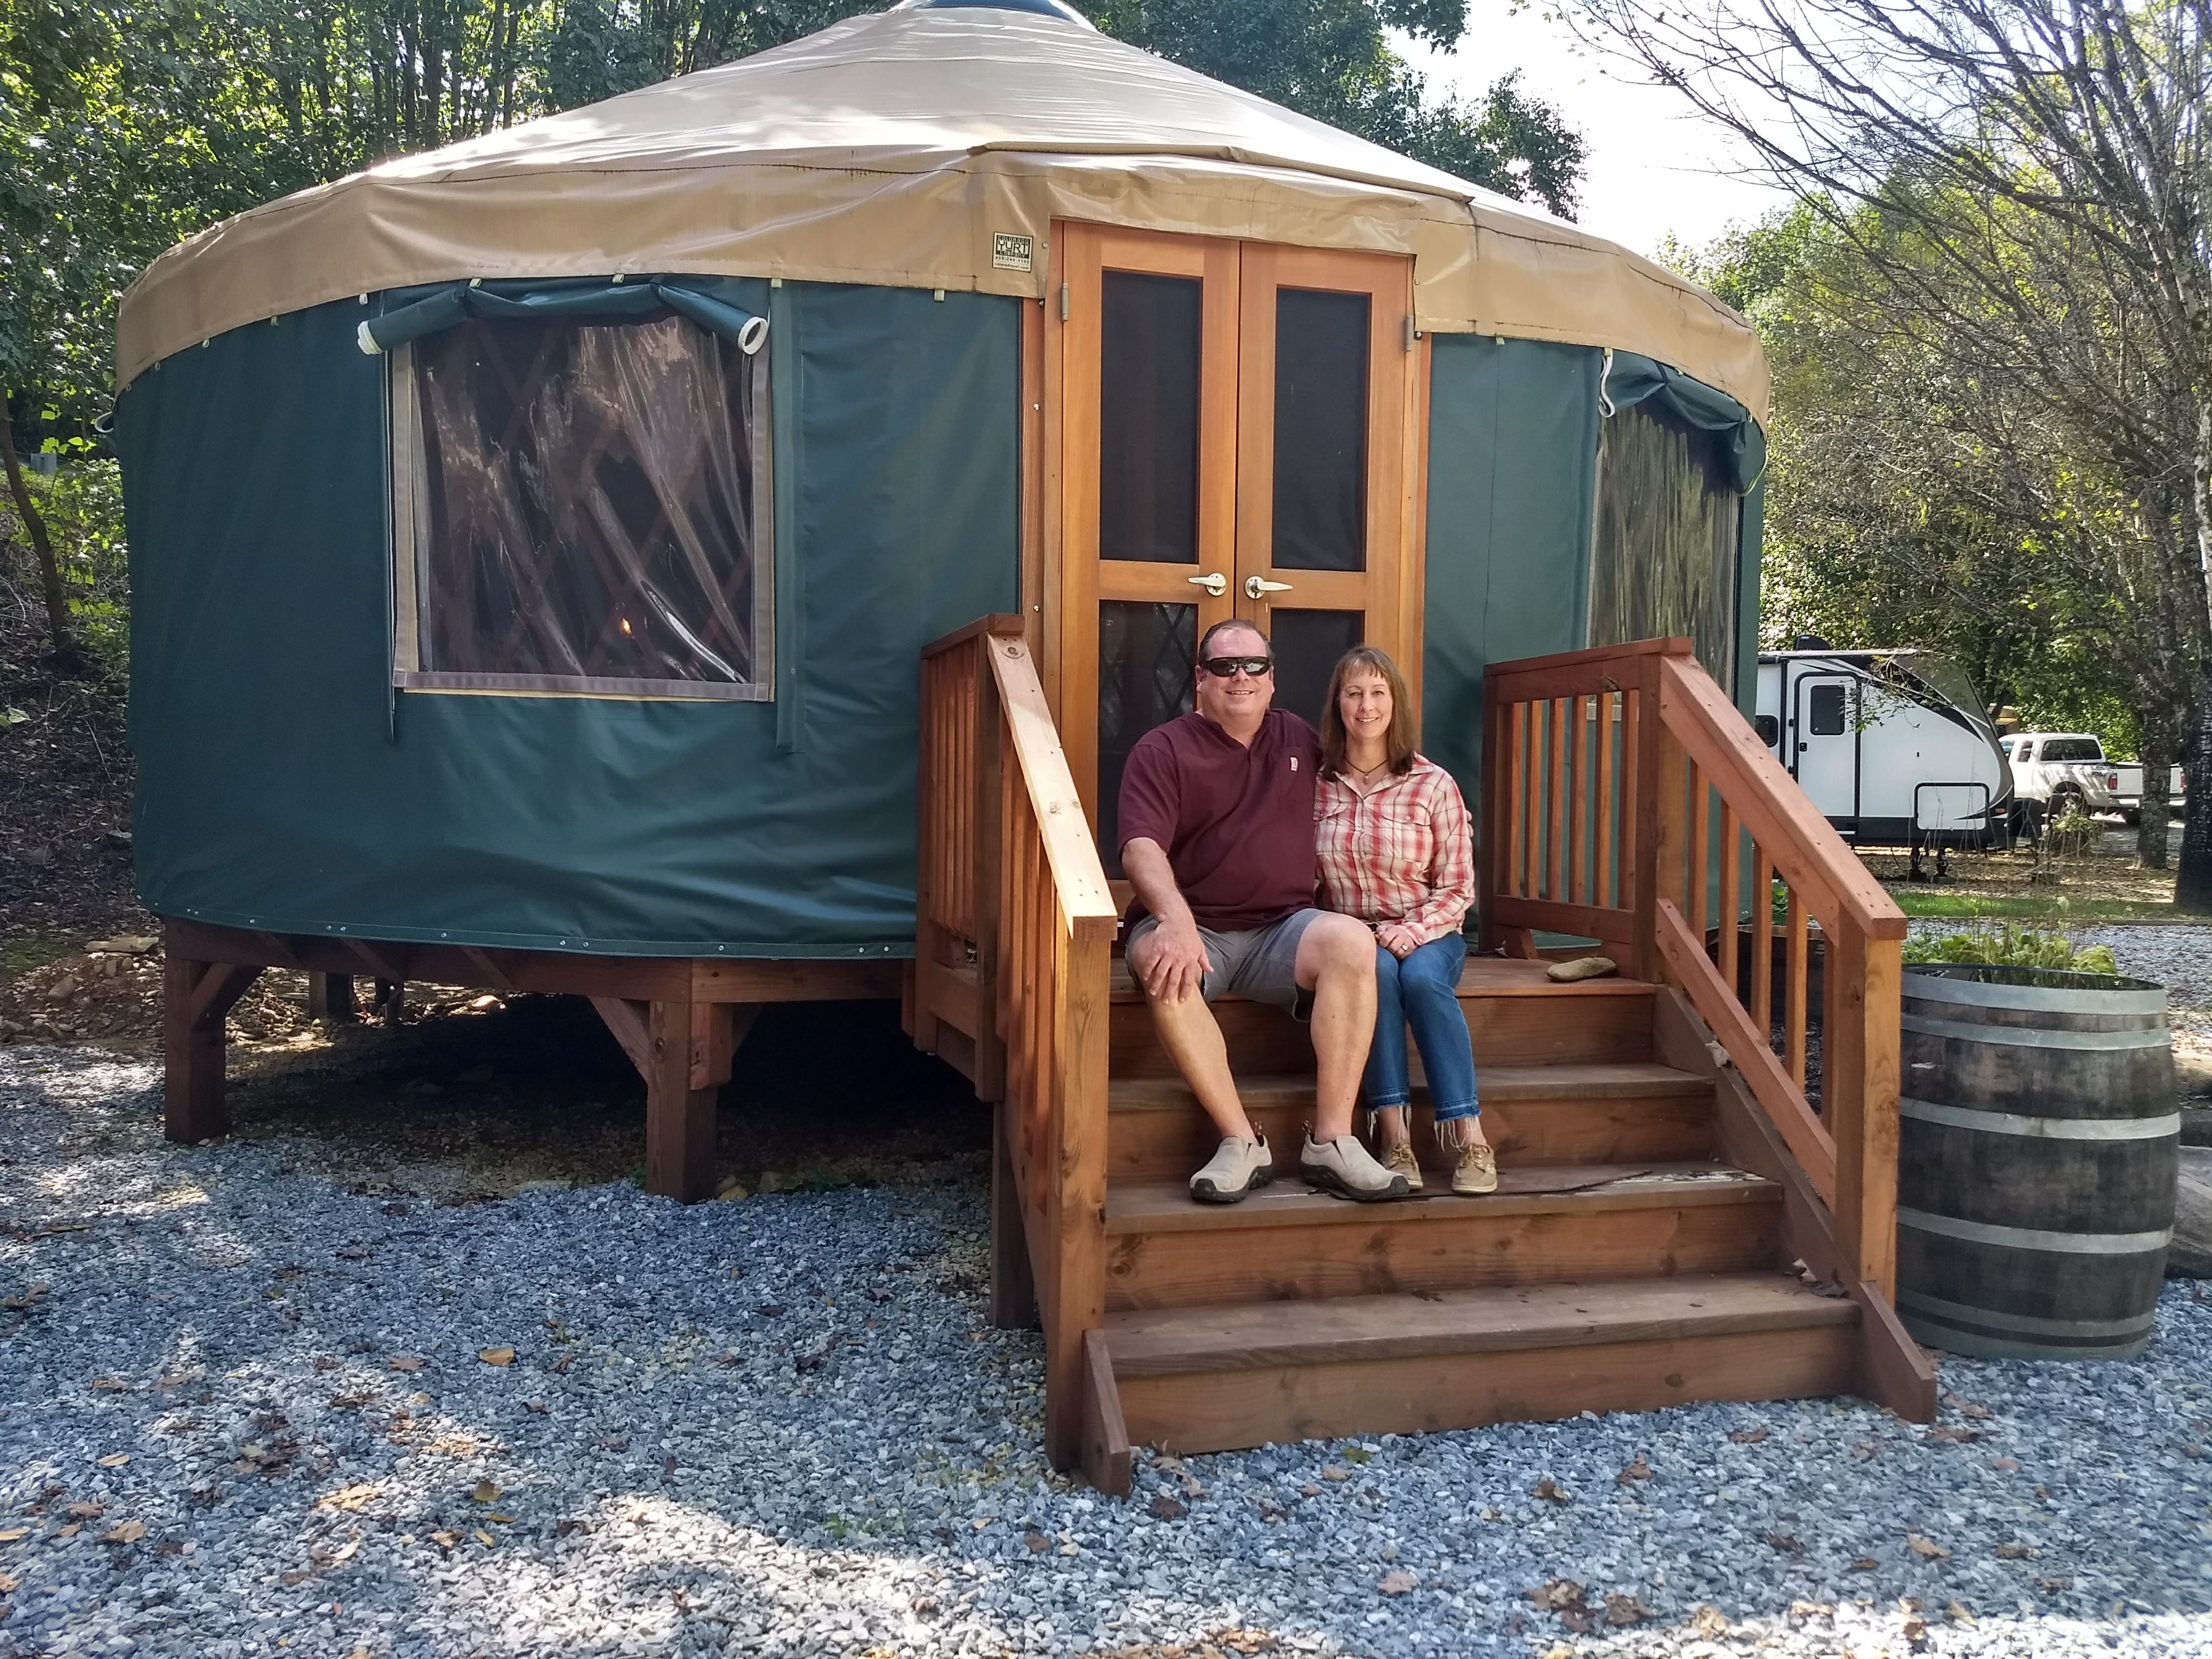 Mountain Stream RV Park Offers Yurts 2018 (Kevin and Gena Middleton)